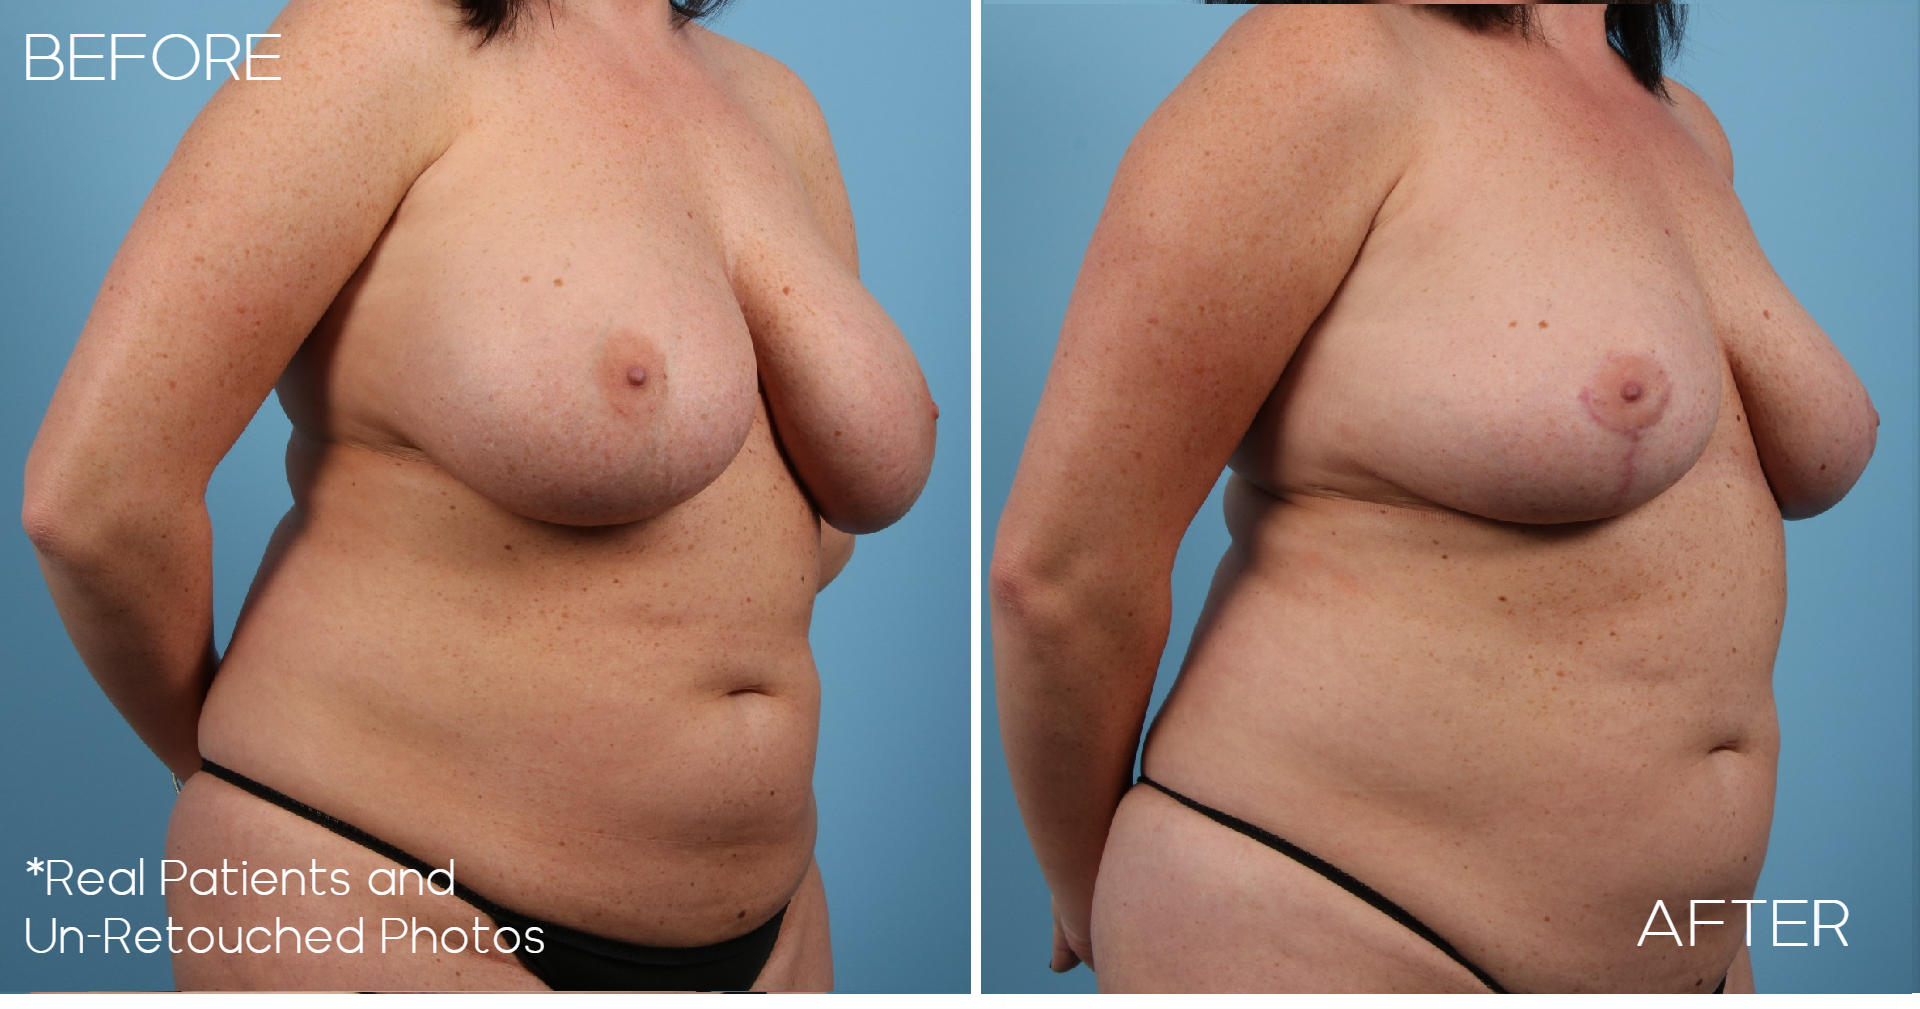 Case-987-Implant-Removal-Breast-Lift-Oblique-Before-and-After